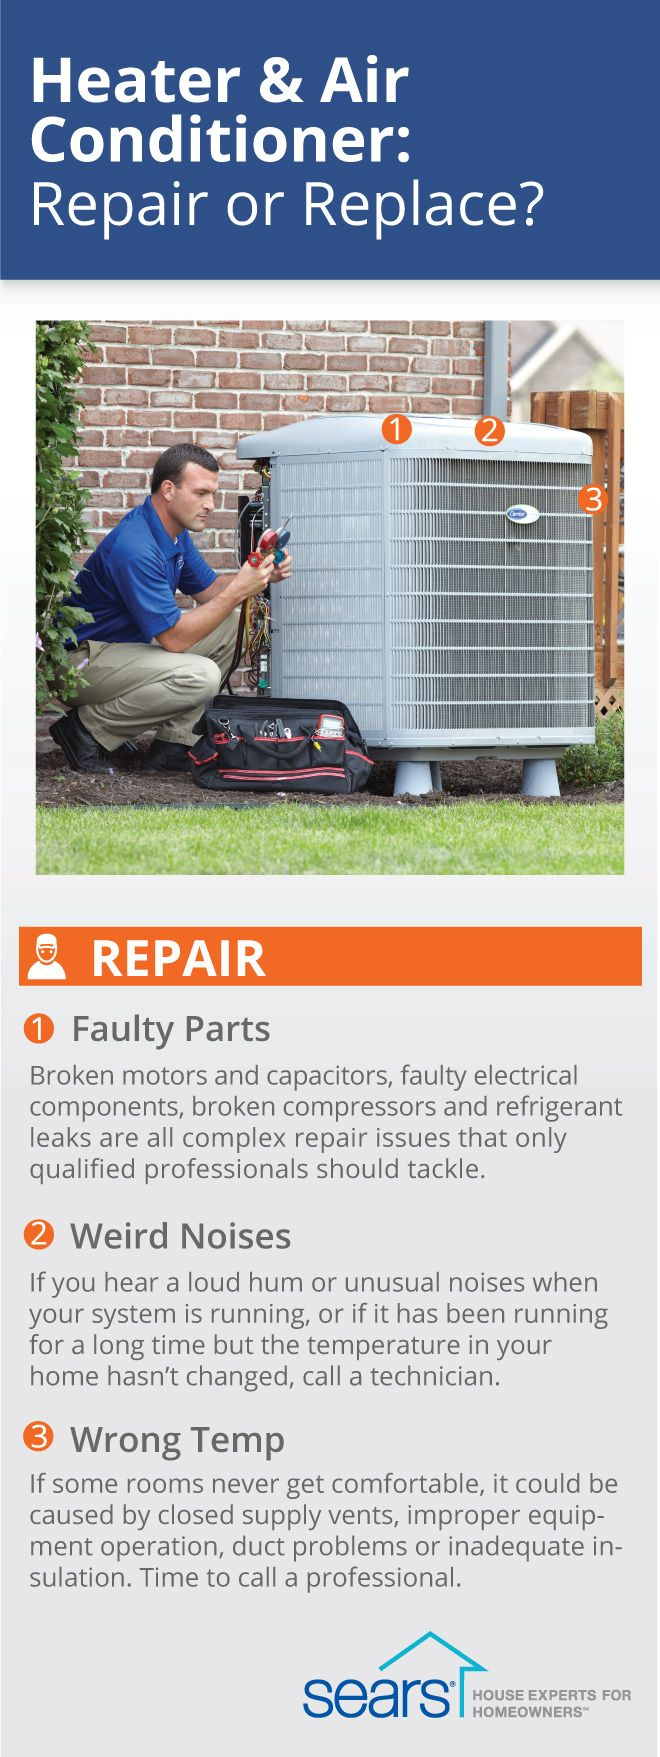 Common Heating and Air Conditioning Problems — If your HVAC system has faulty parts, makes weird noises, or gives off the wrong temp, it could be time to call in an expert. We'll help you determine whether you should try to fix the problem yourself, call an AC or heating tech, or consider buying a new HVAC system.